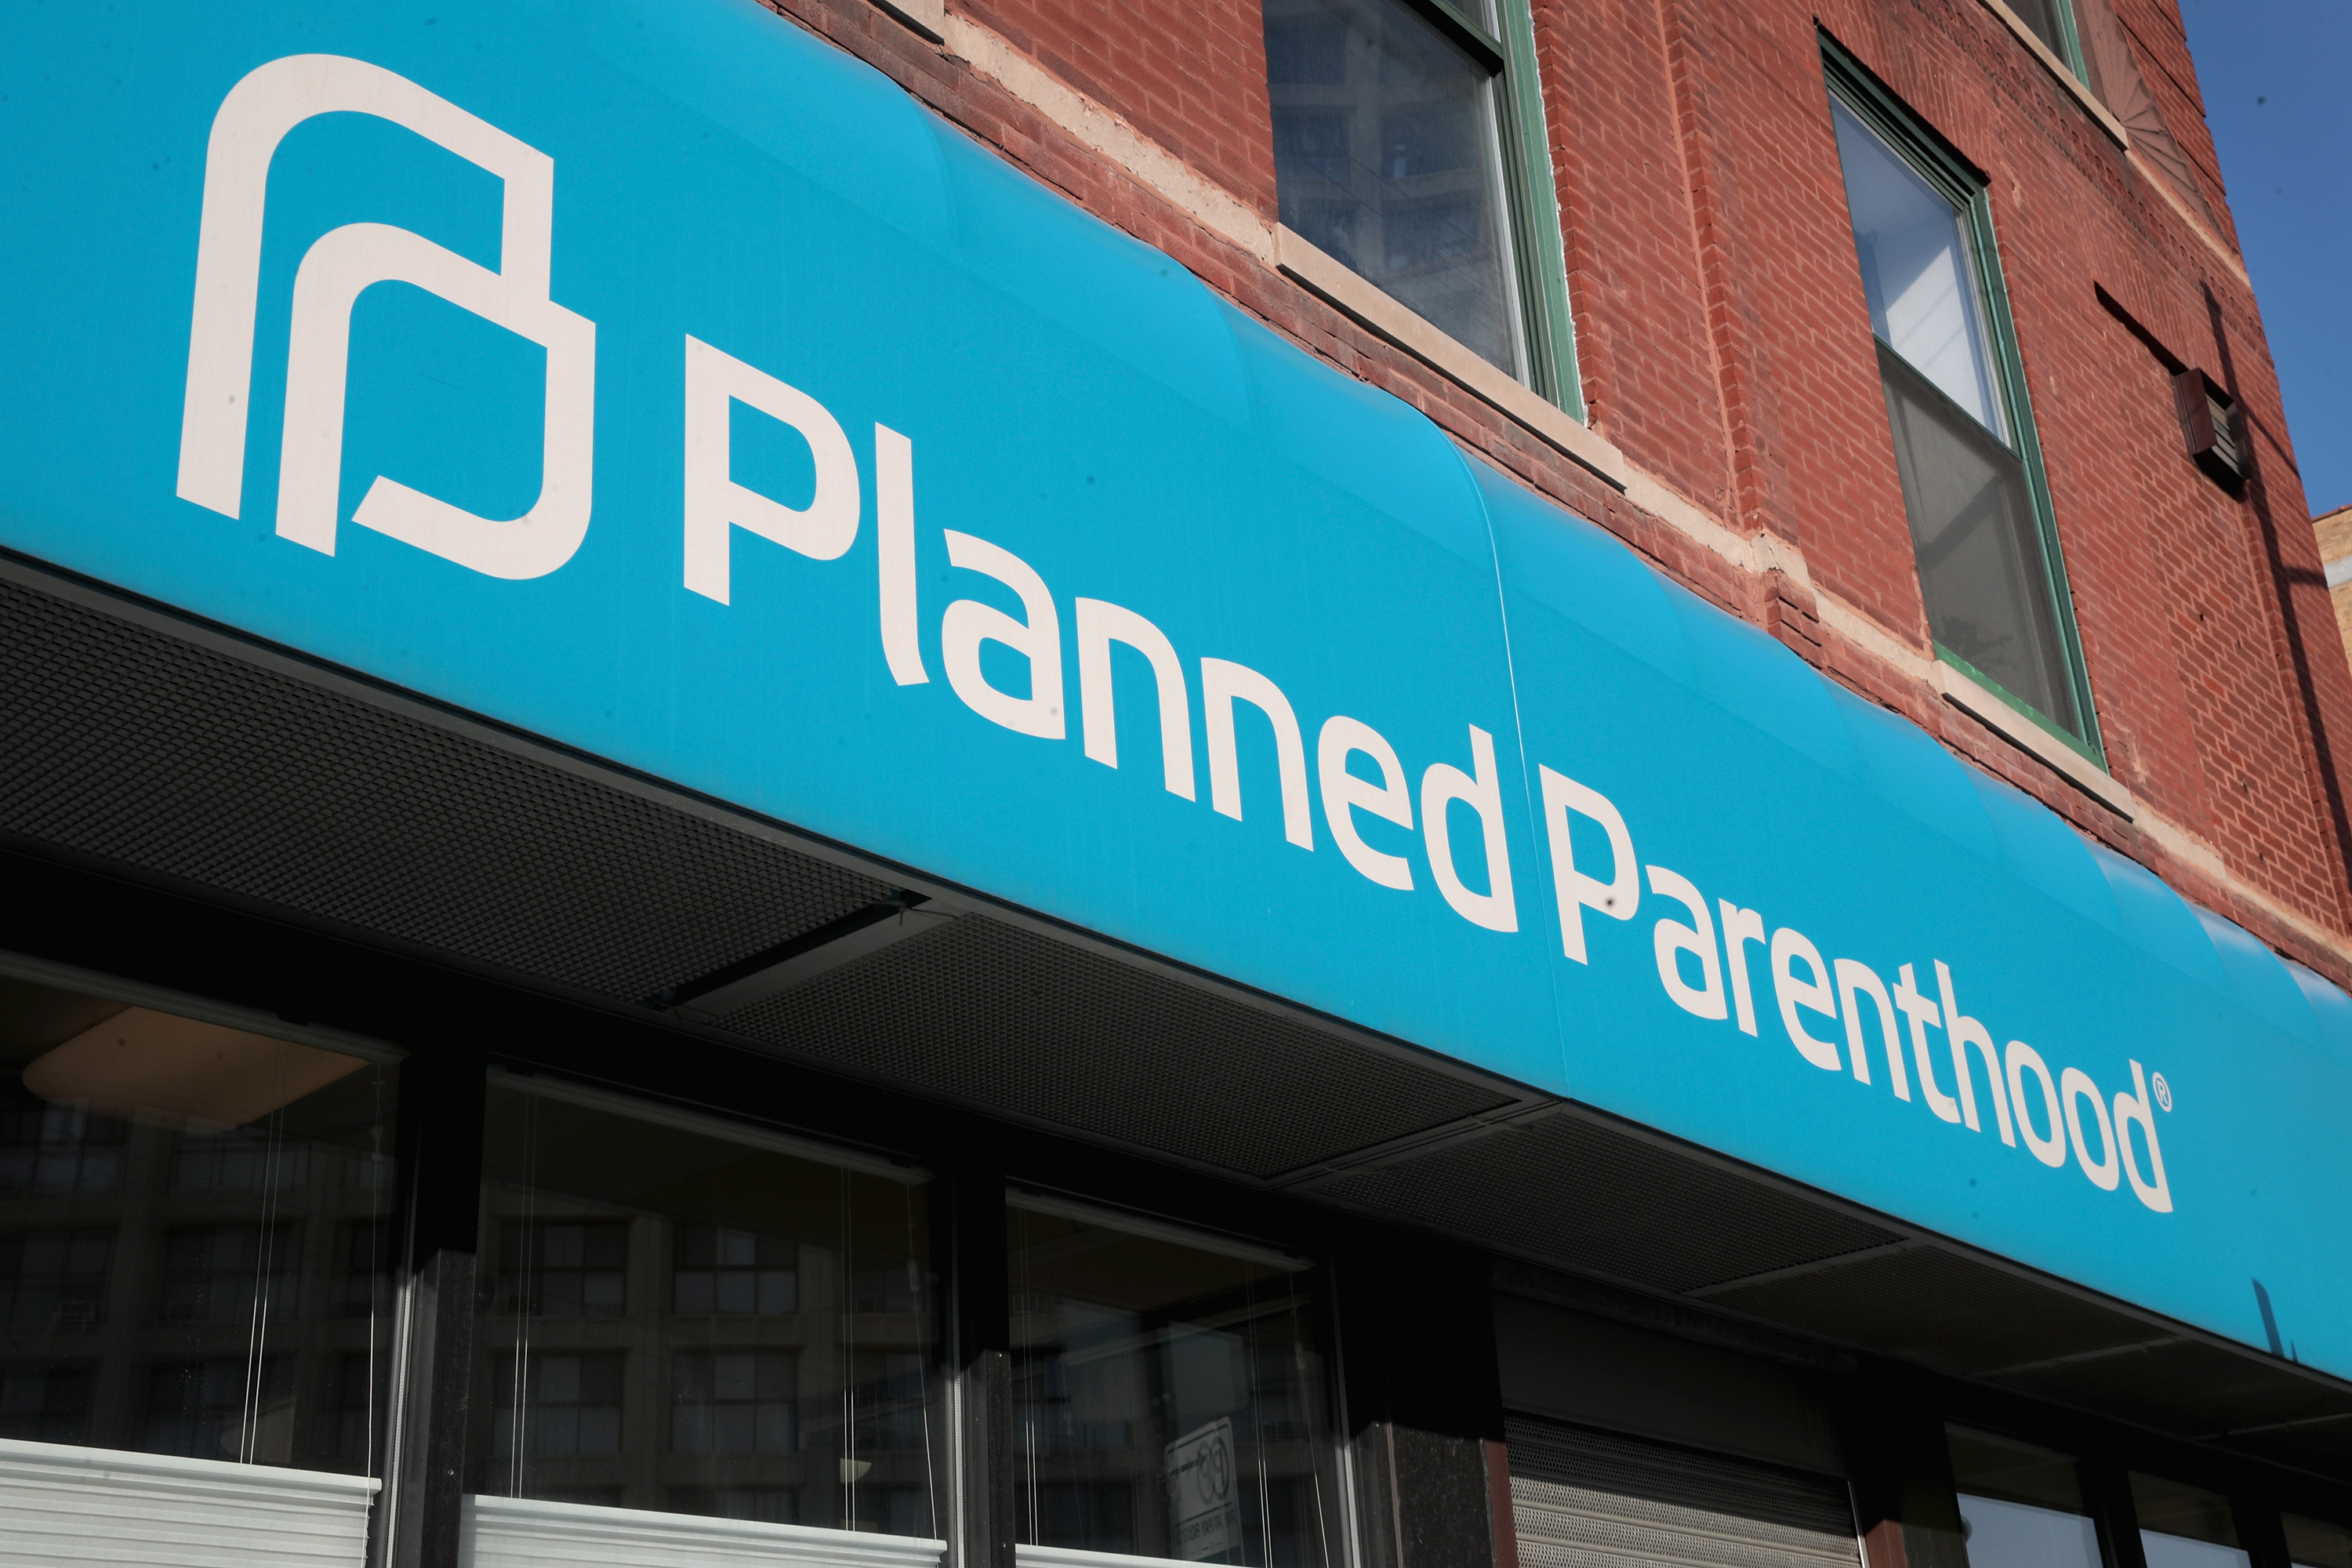 A Planned Parenthood clinic on May 18, 2018 in Chicago, Illinois. (Scott Olson/Getty Images